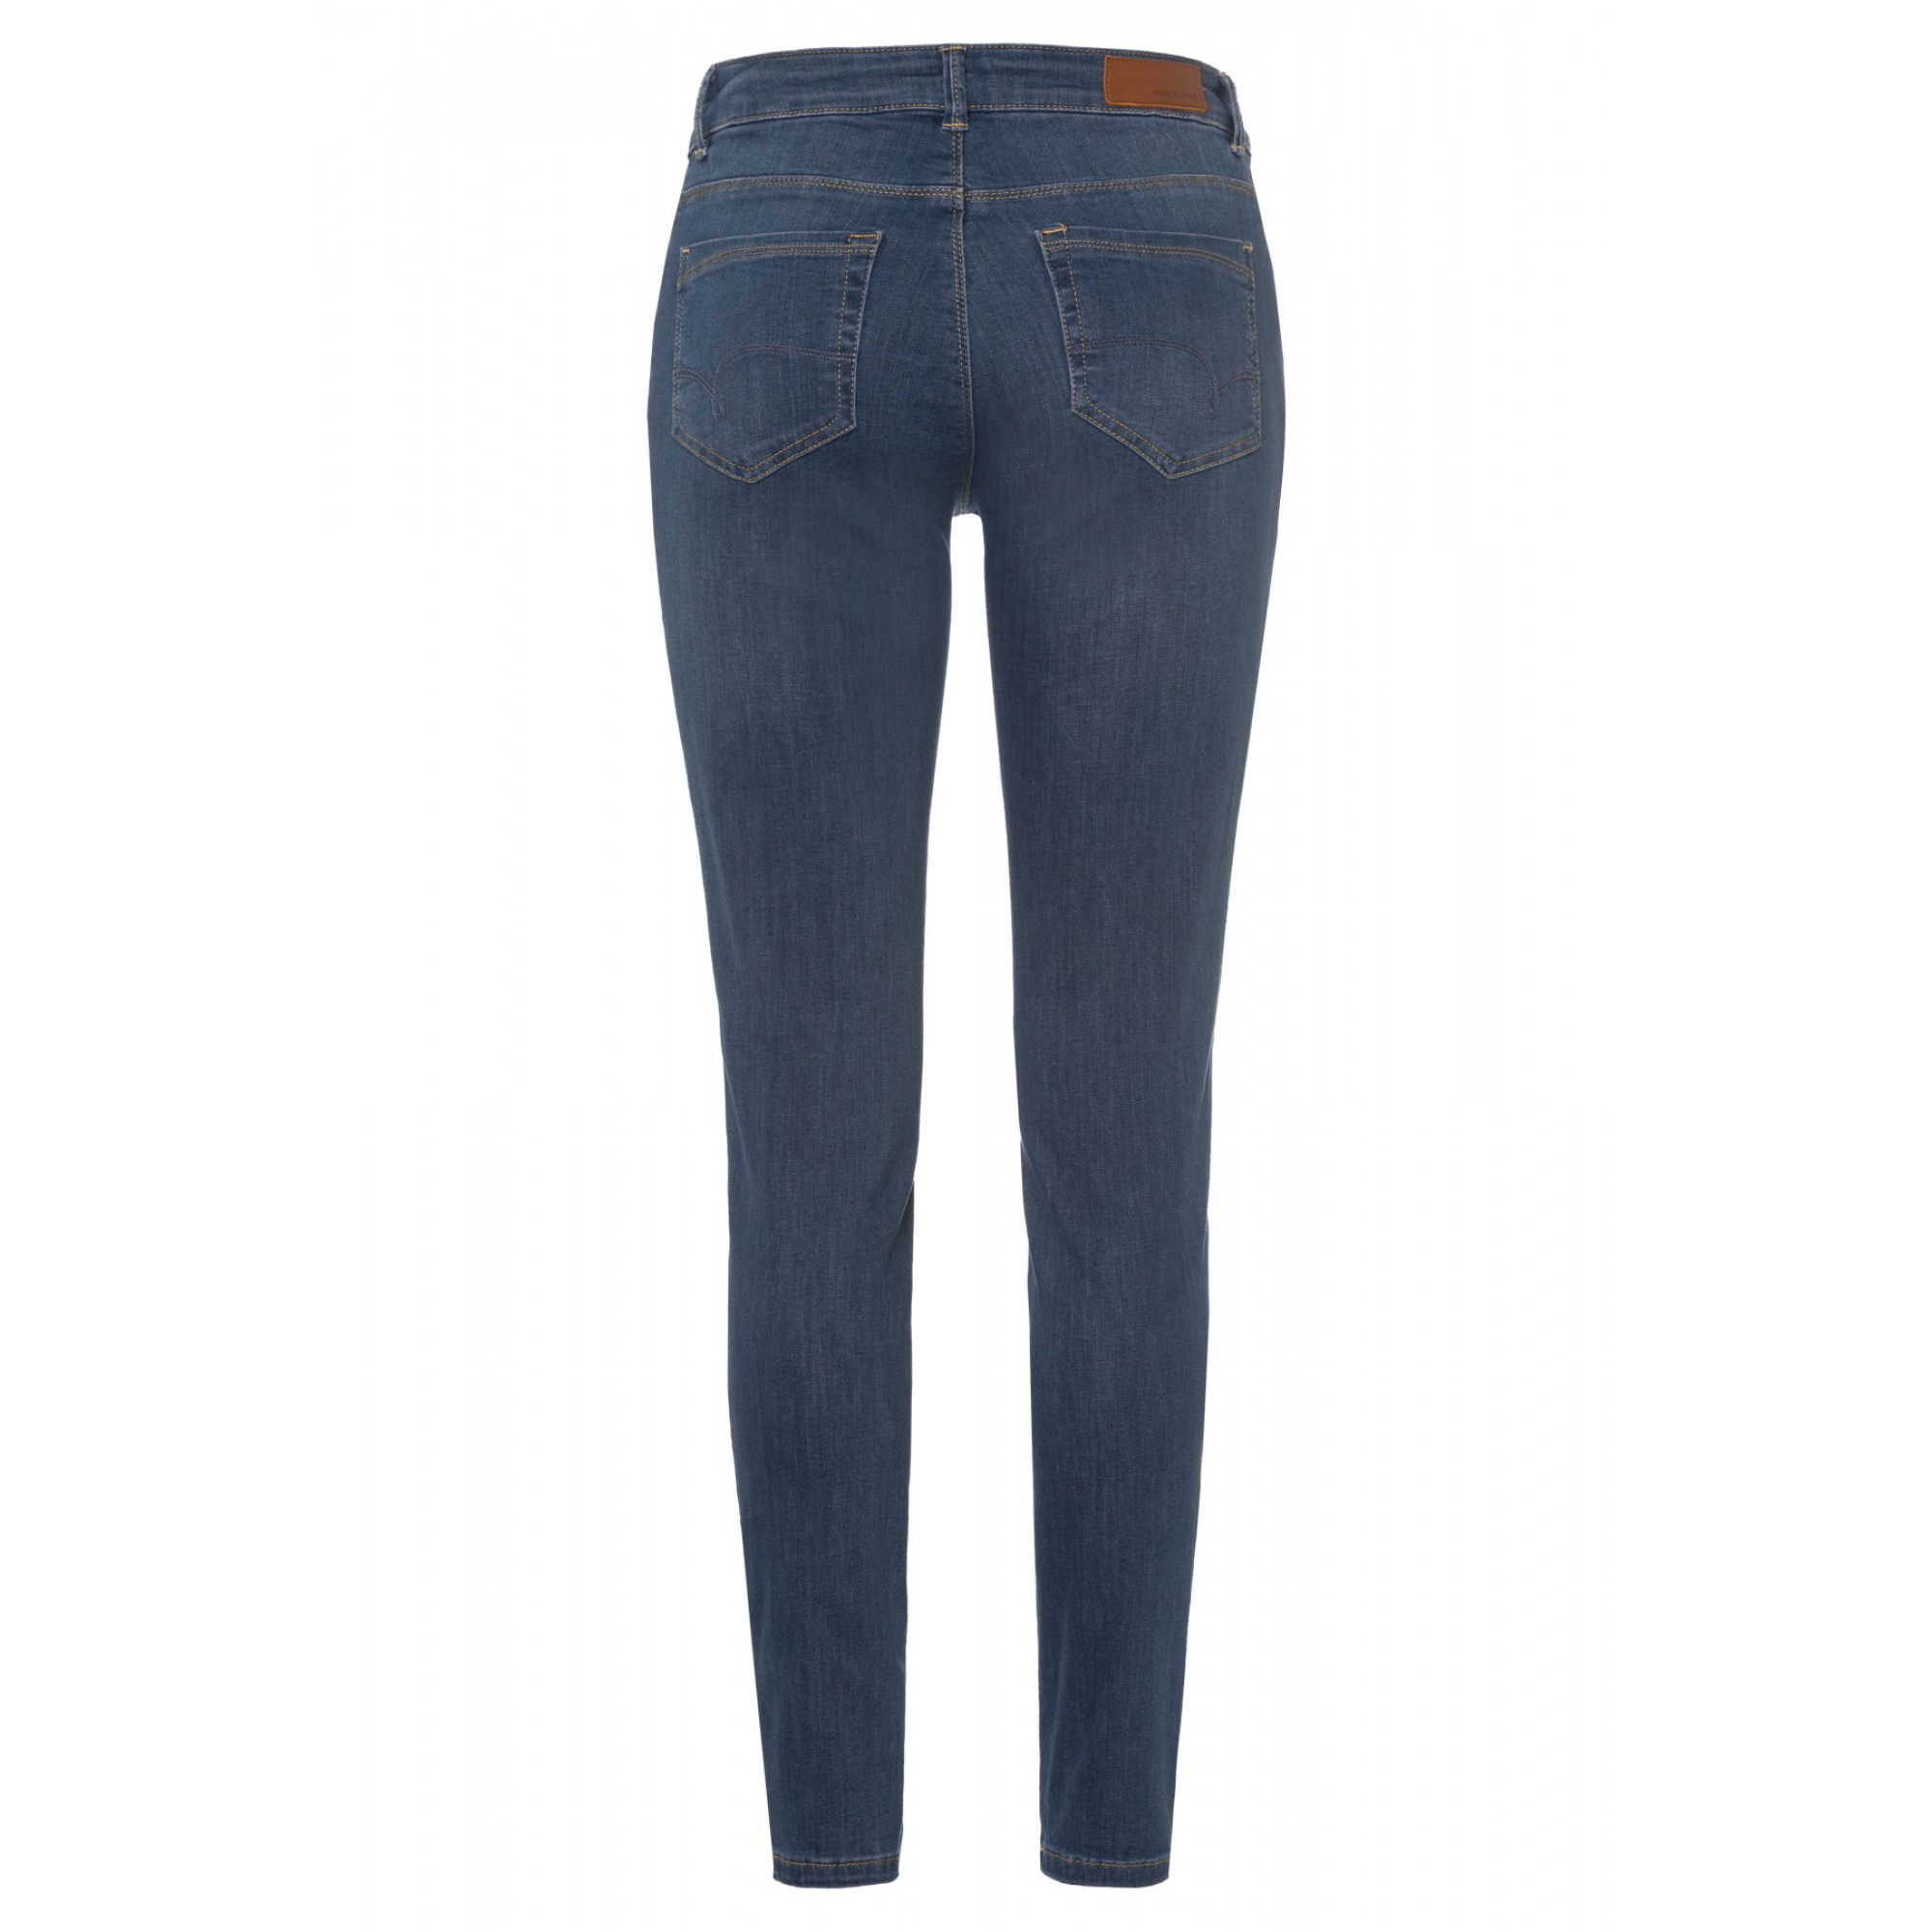 Five Pocket Jeans, Hazel 91074201-0962 2